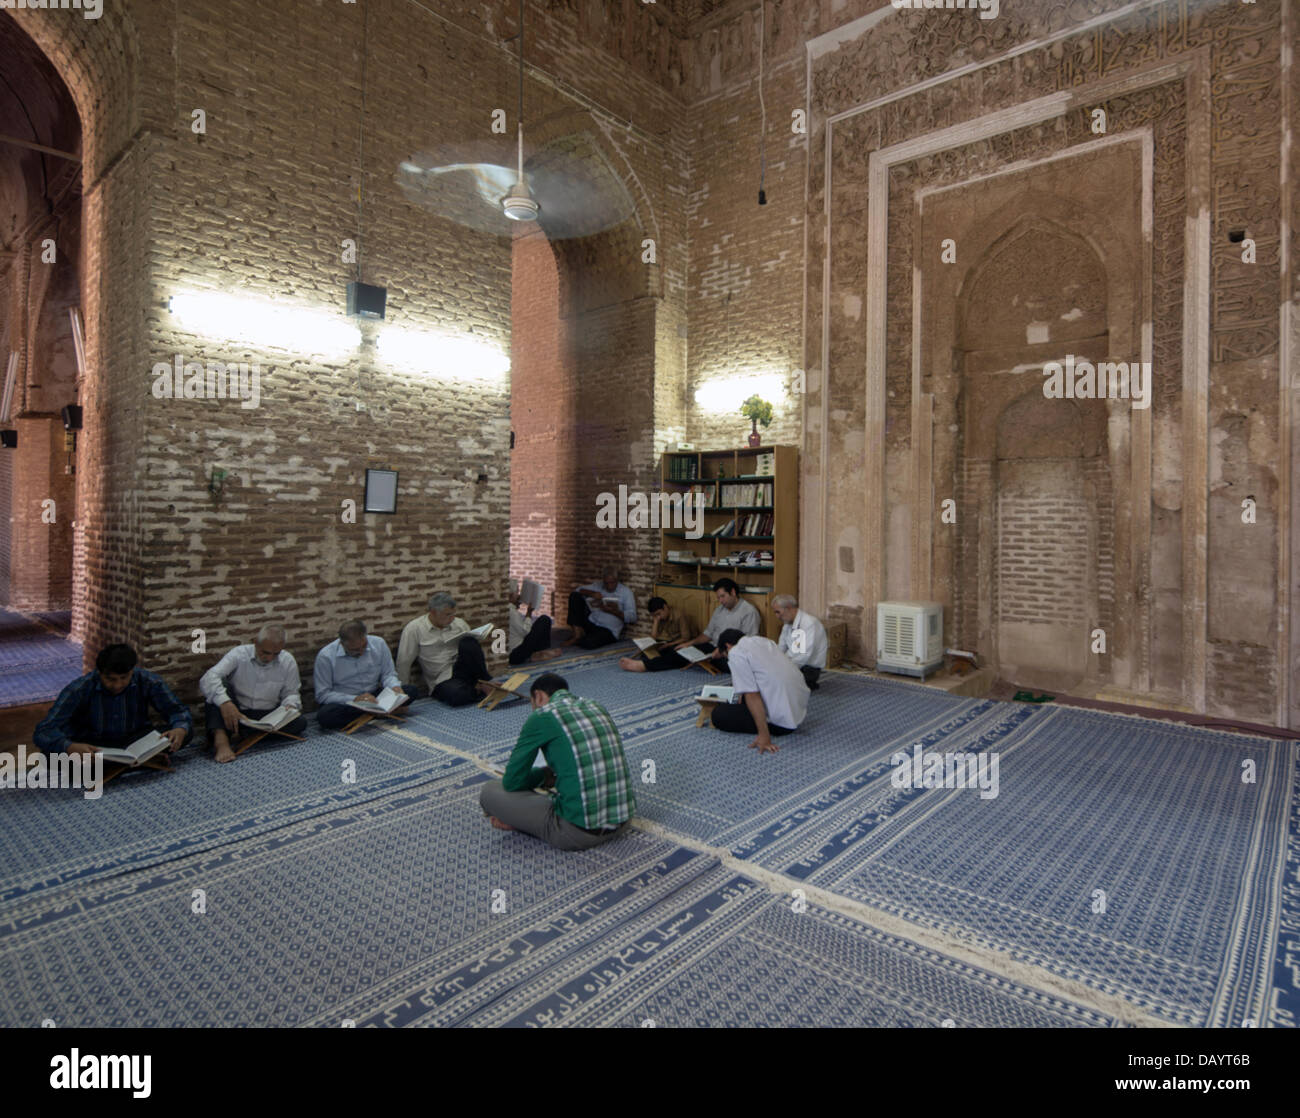 Muslims awaiting the iftar breaking of the fast in Ramadan read the Quran in the ancient mosque in the village of - Stock Image